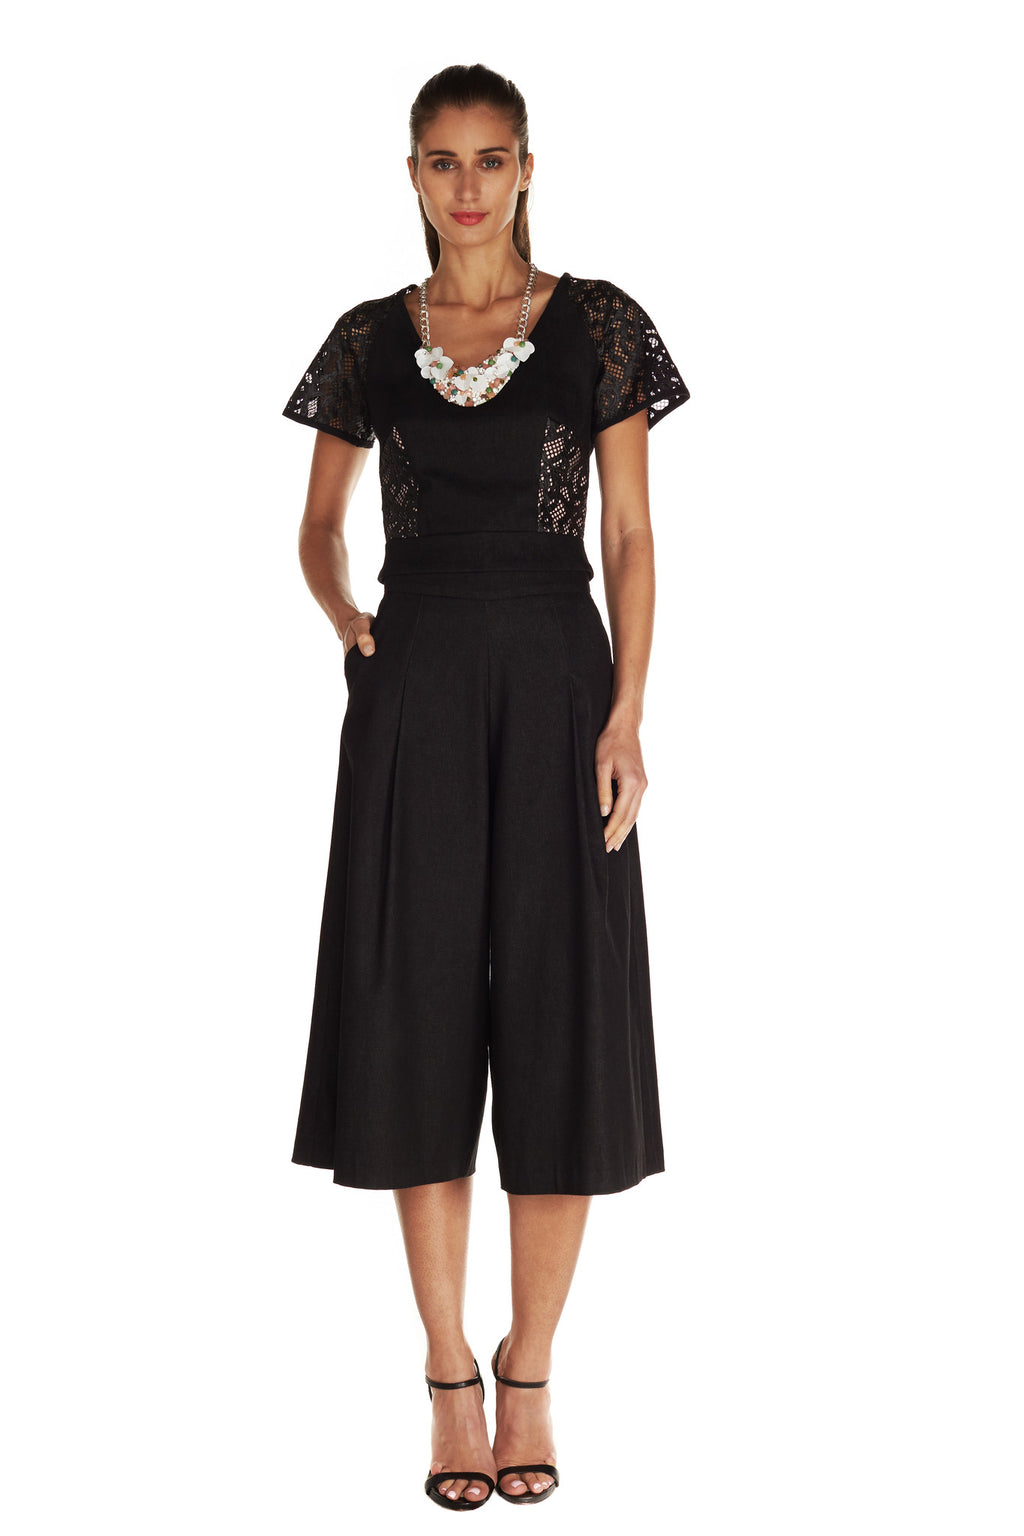 ANNALIESE CULOTTES - Kelly & Port